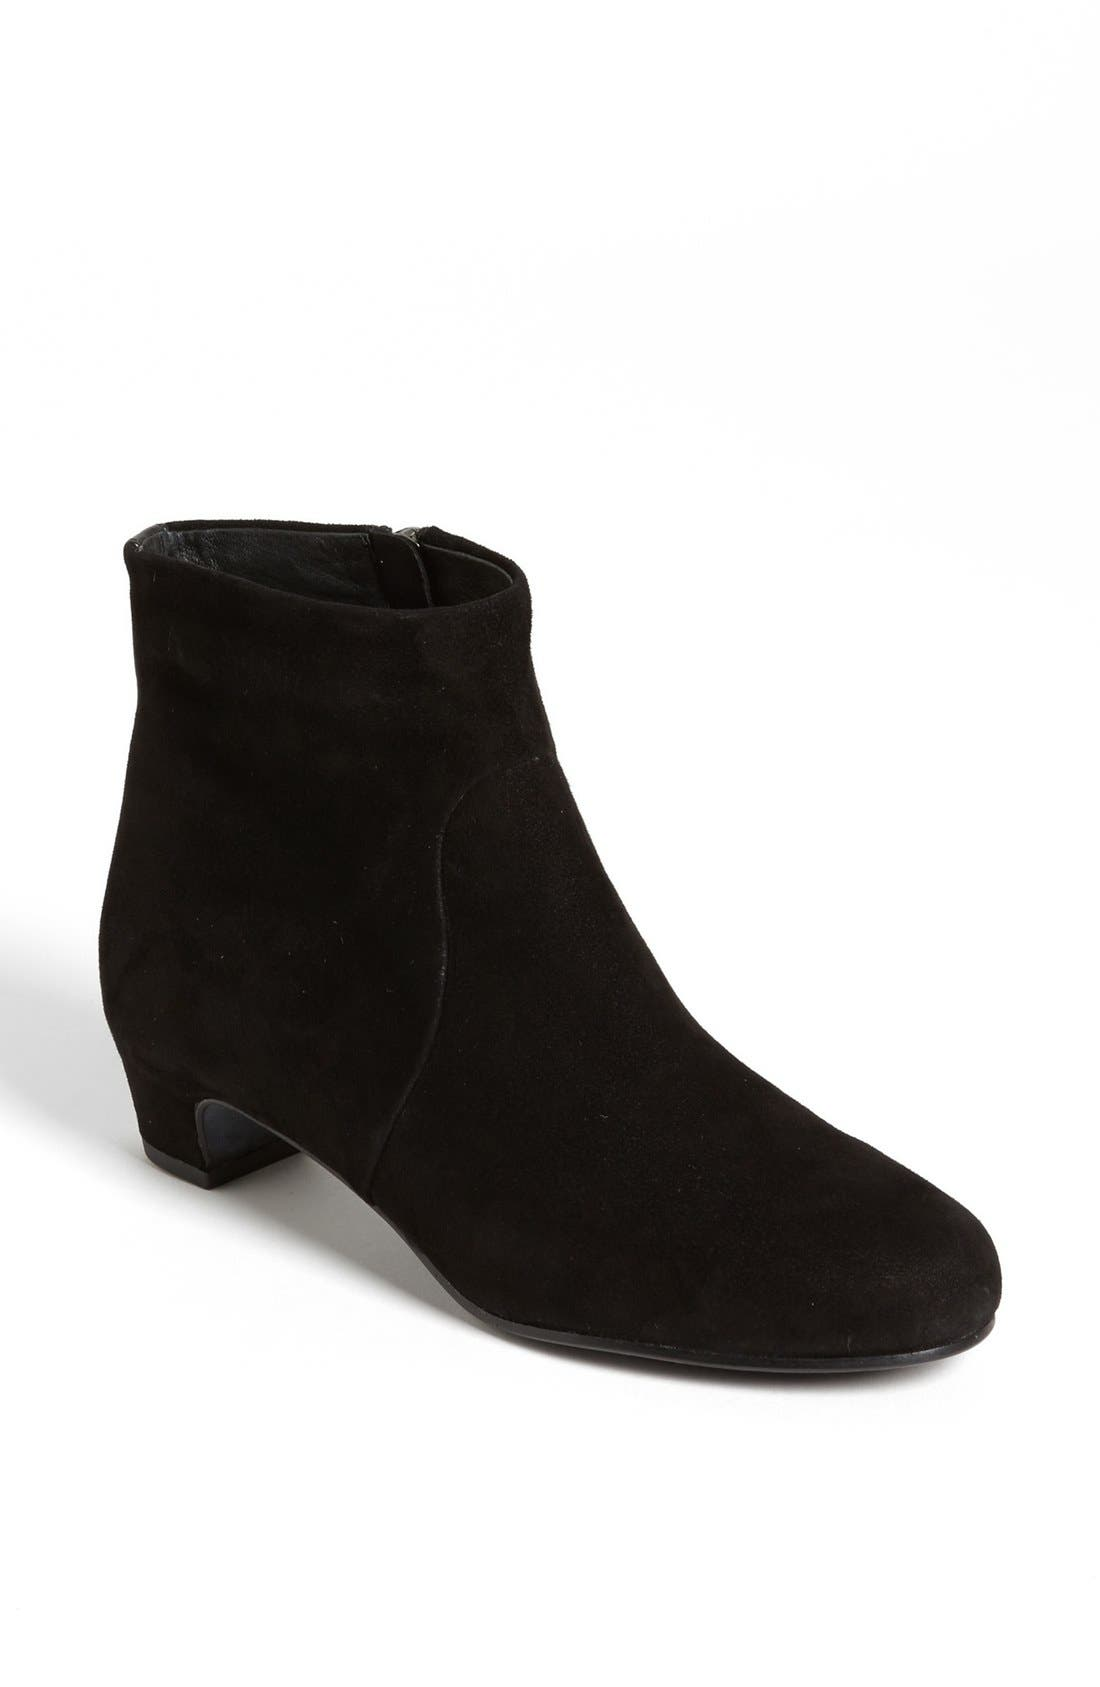 Main Image - Eileen Fisher 'Key' Bootie